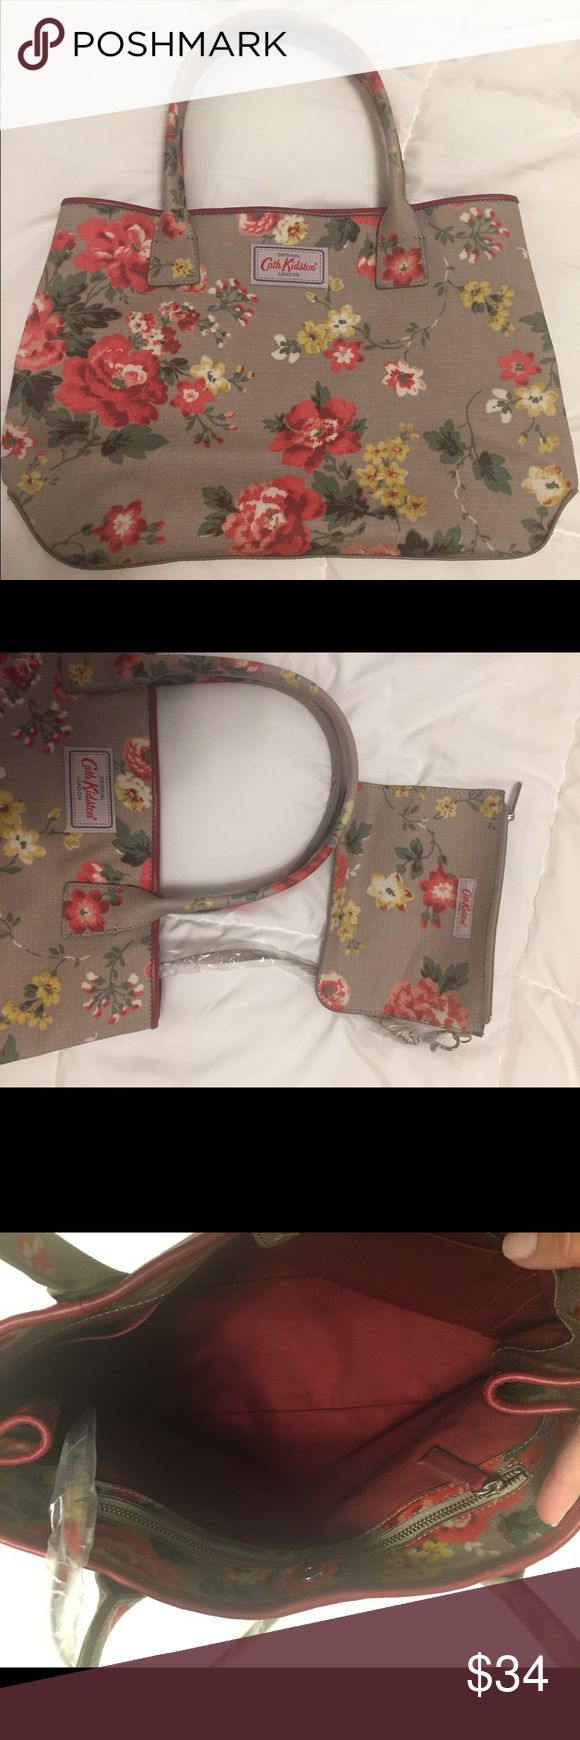 Cath Kidston Handbag, New Original Cath Kidston handbag, new. Color can look tan or grey, goes with lots of colors! Cute change purse attached with clip, one large inner pocket, two smaller inner pockets. No sales tag but still has plastic. Approx 15 inches wide, 10 inches tall (8.5x11 sheet of paper in photo for reference). Bags Shoulder Bags